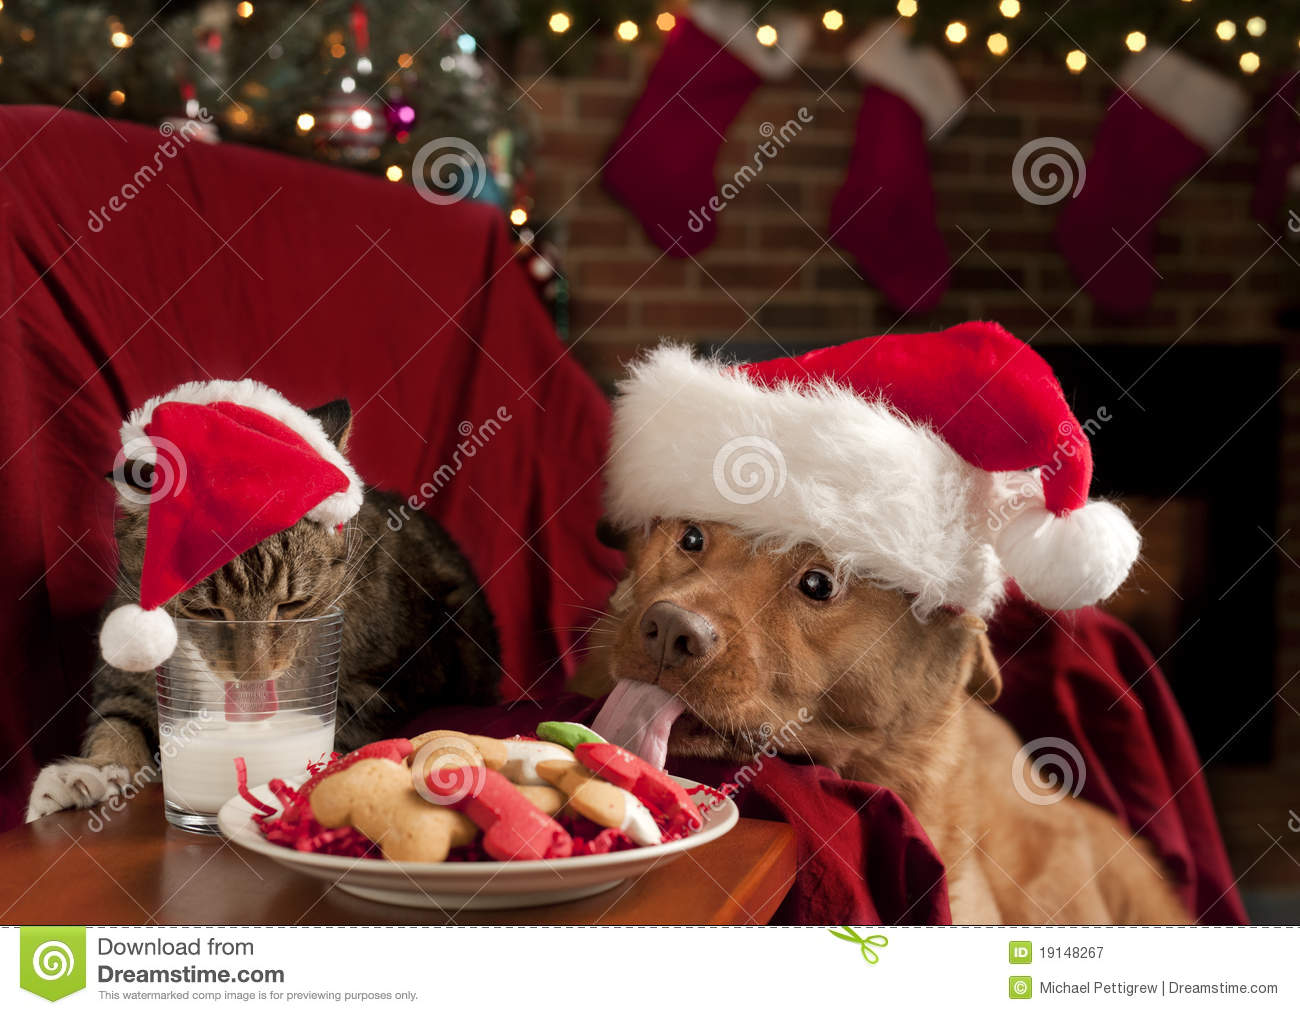 Cat and Dog devouring Santa s cookies and milk